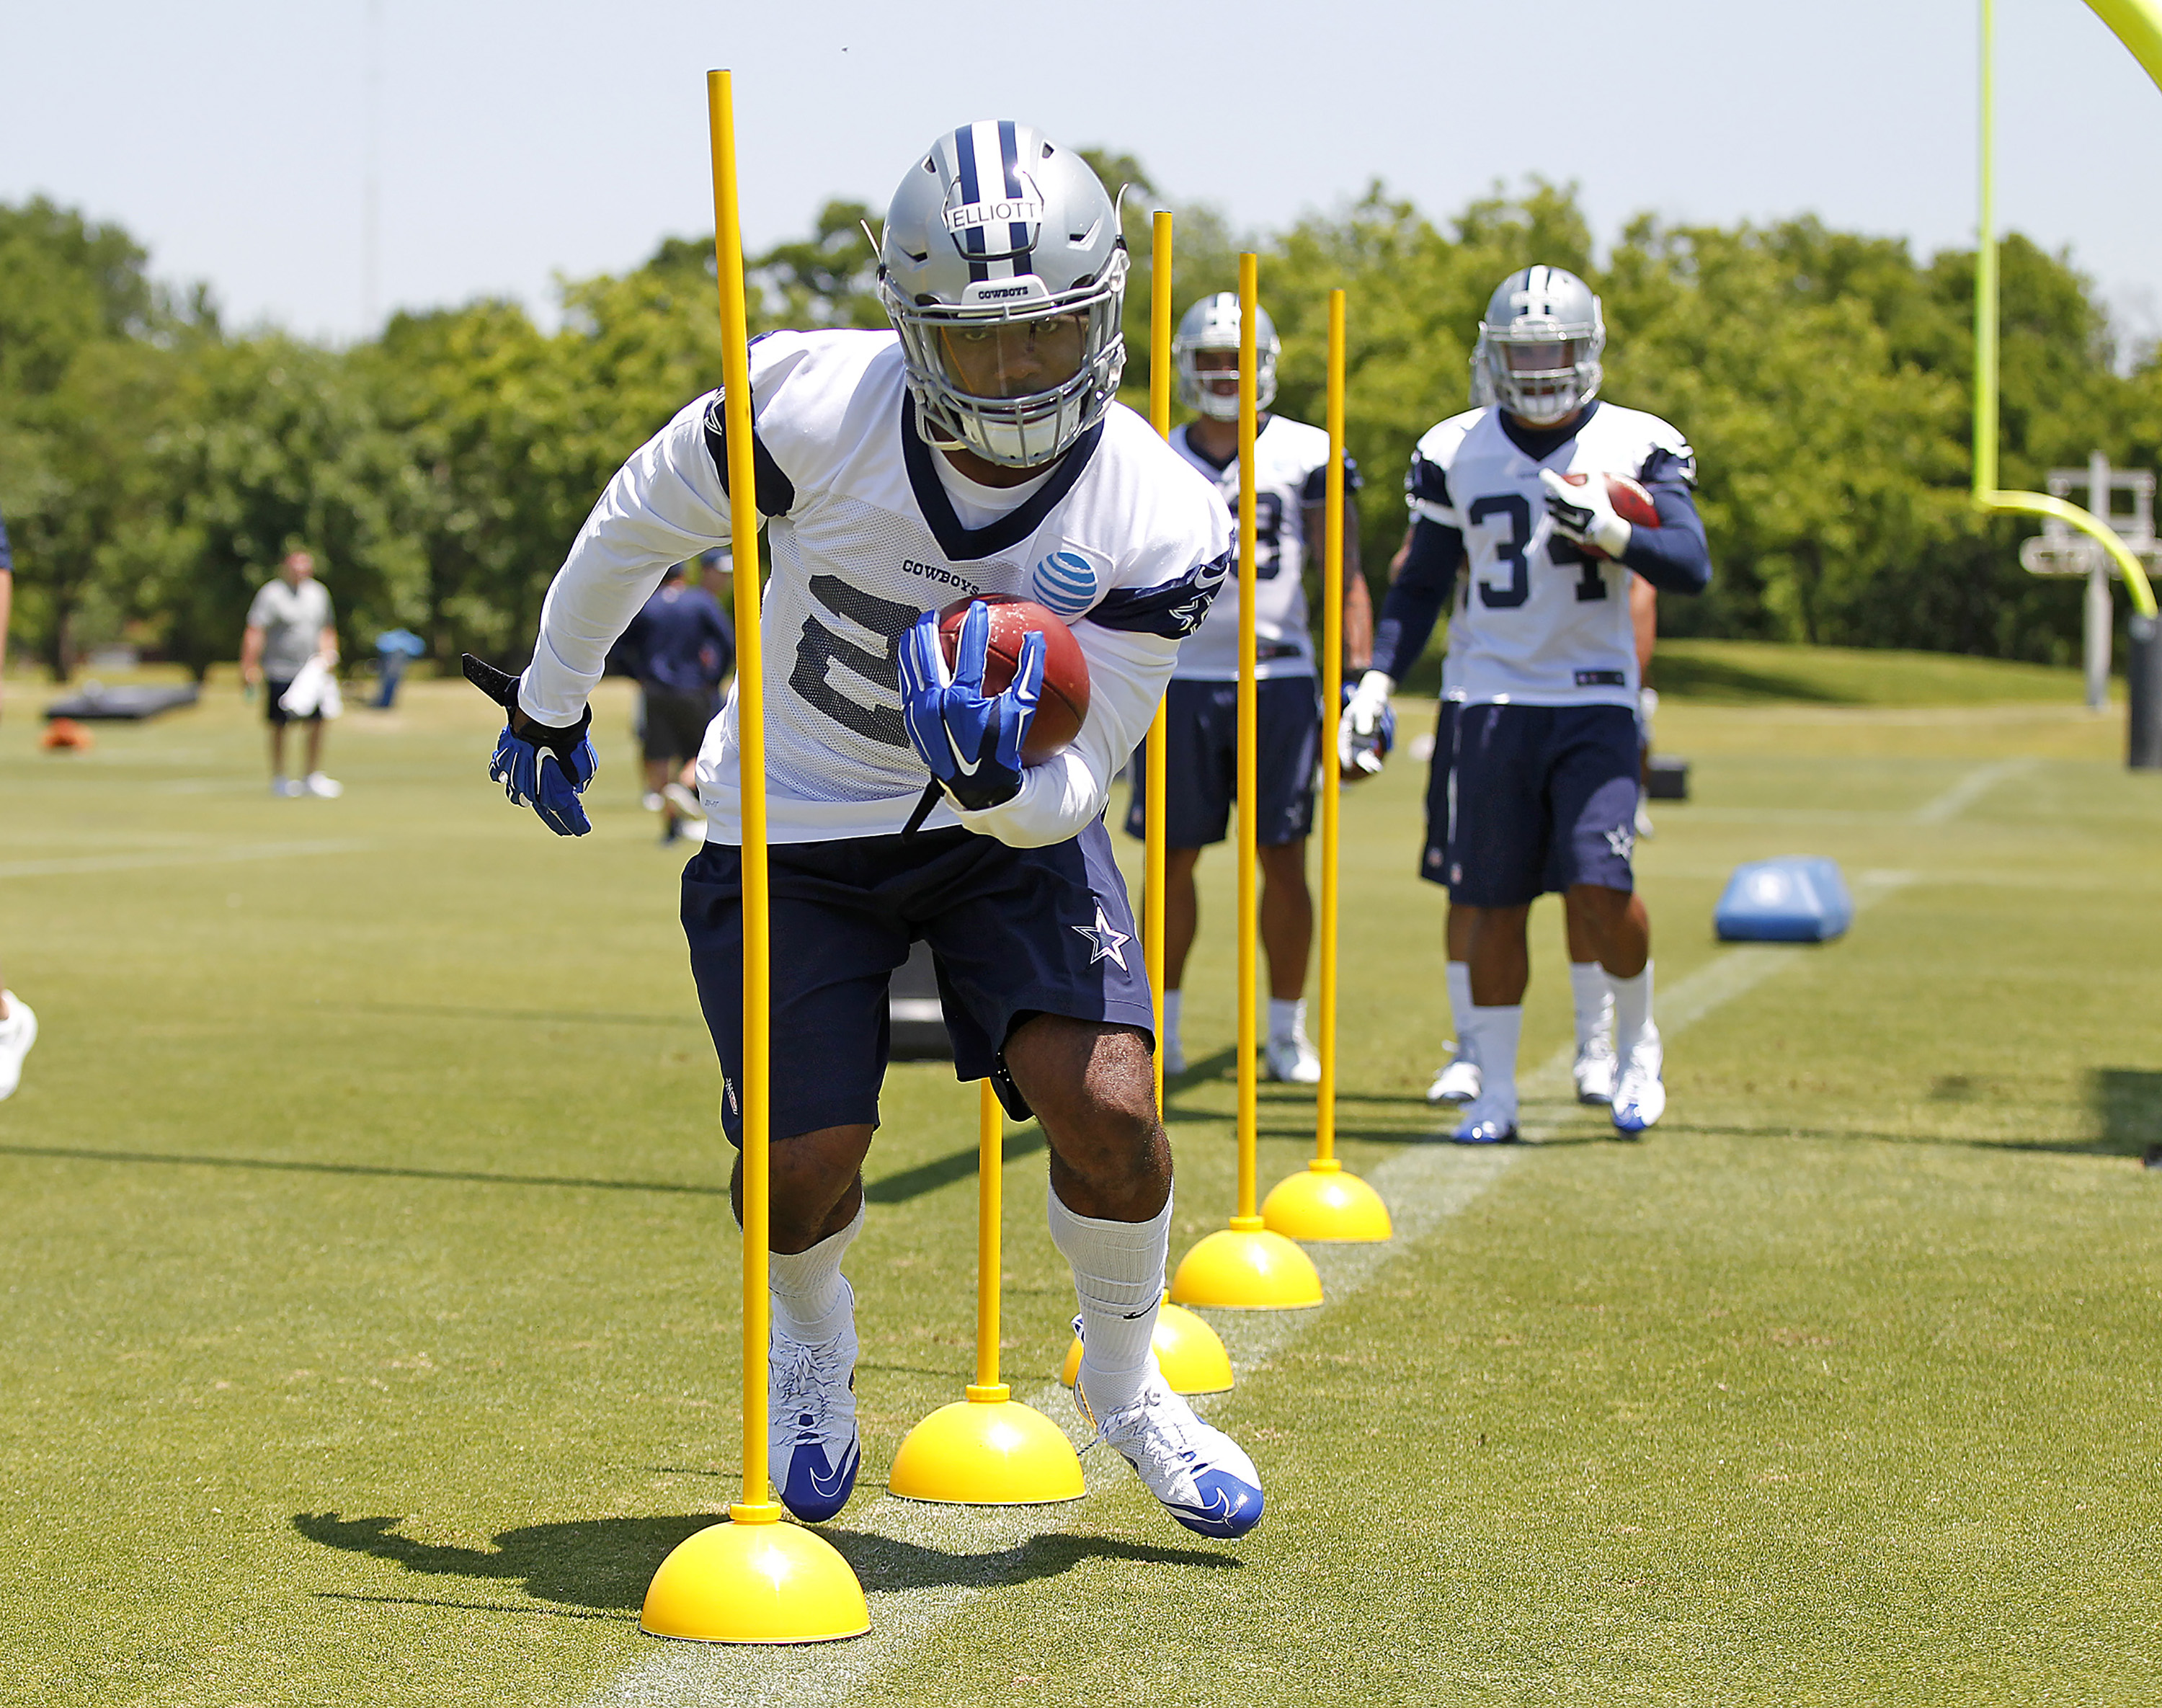 Cowboys Headlines - Finding Roles for the Cowboys Offensive Rookies 1